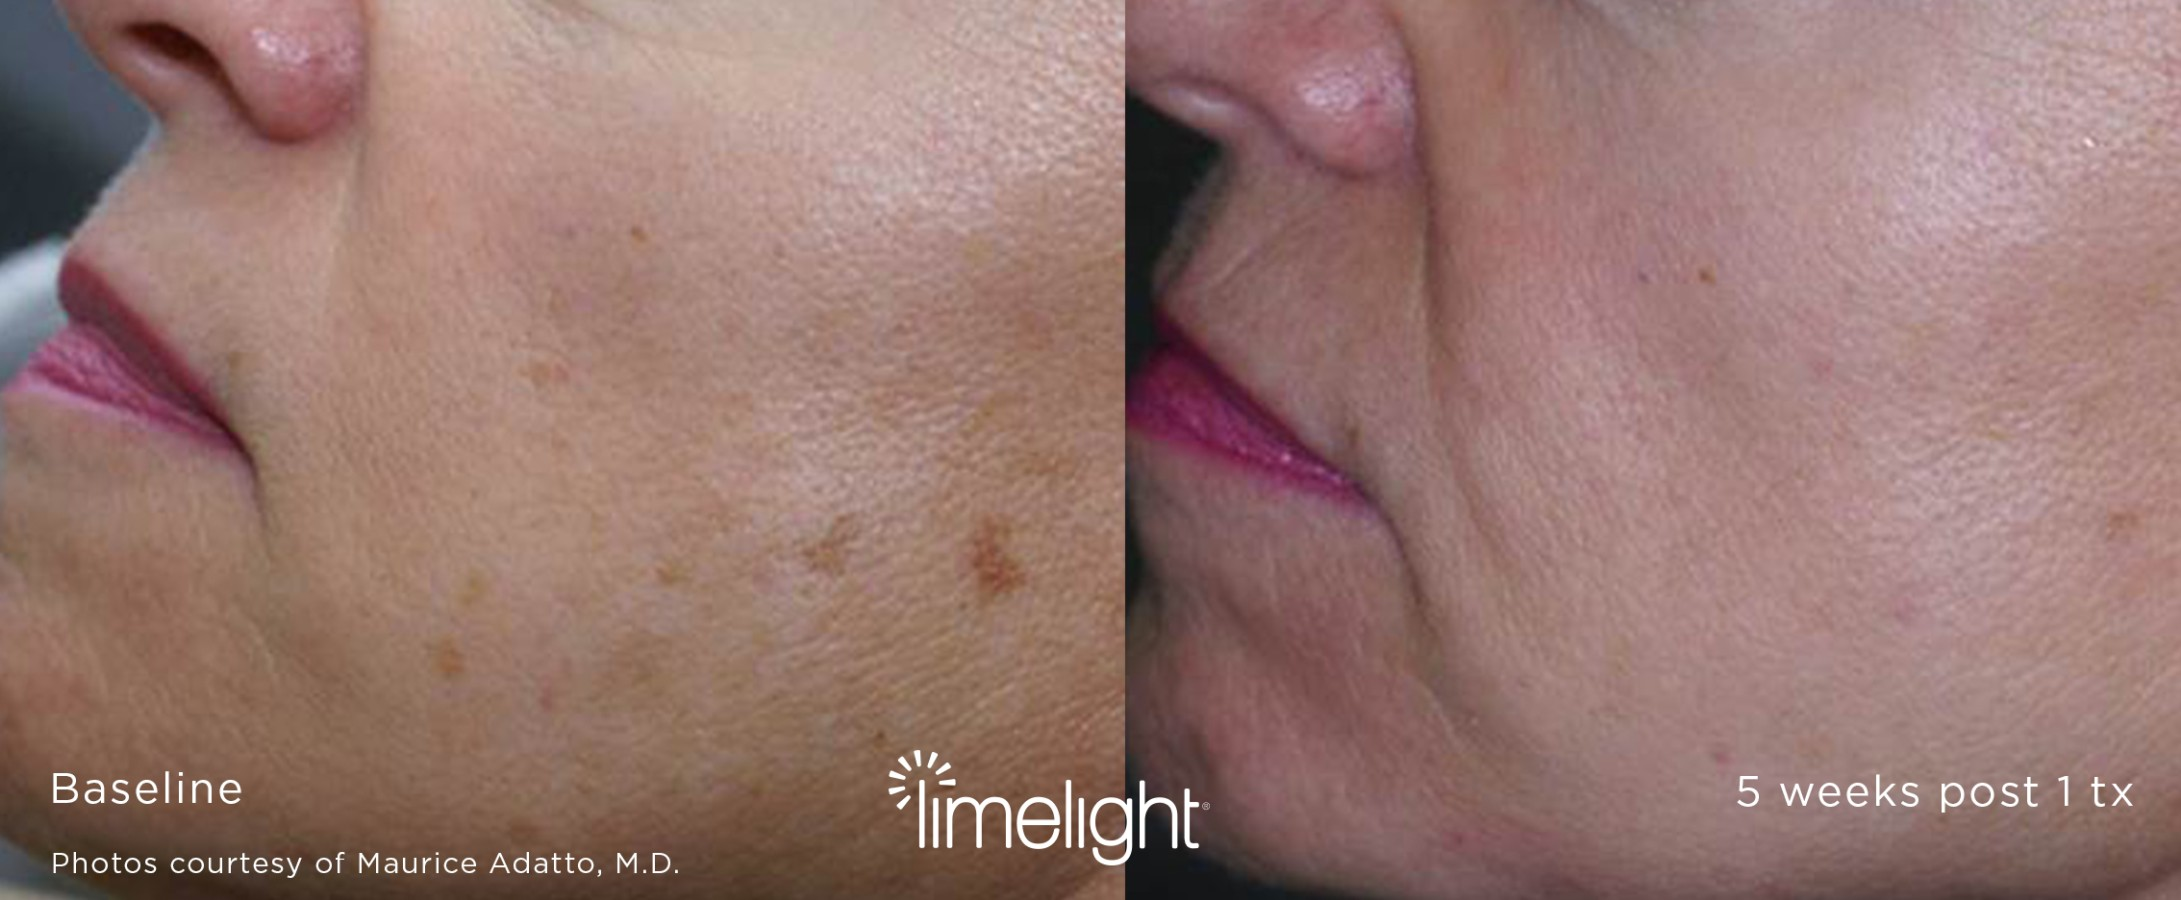 Limelight facial before and after results